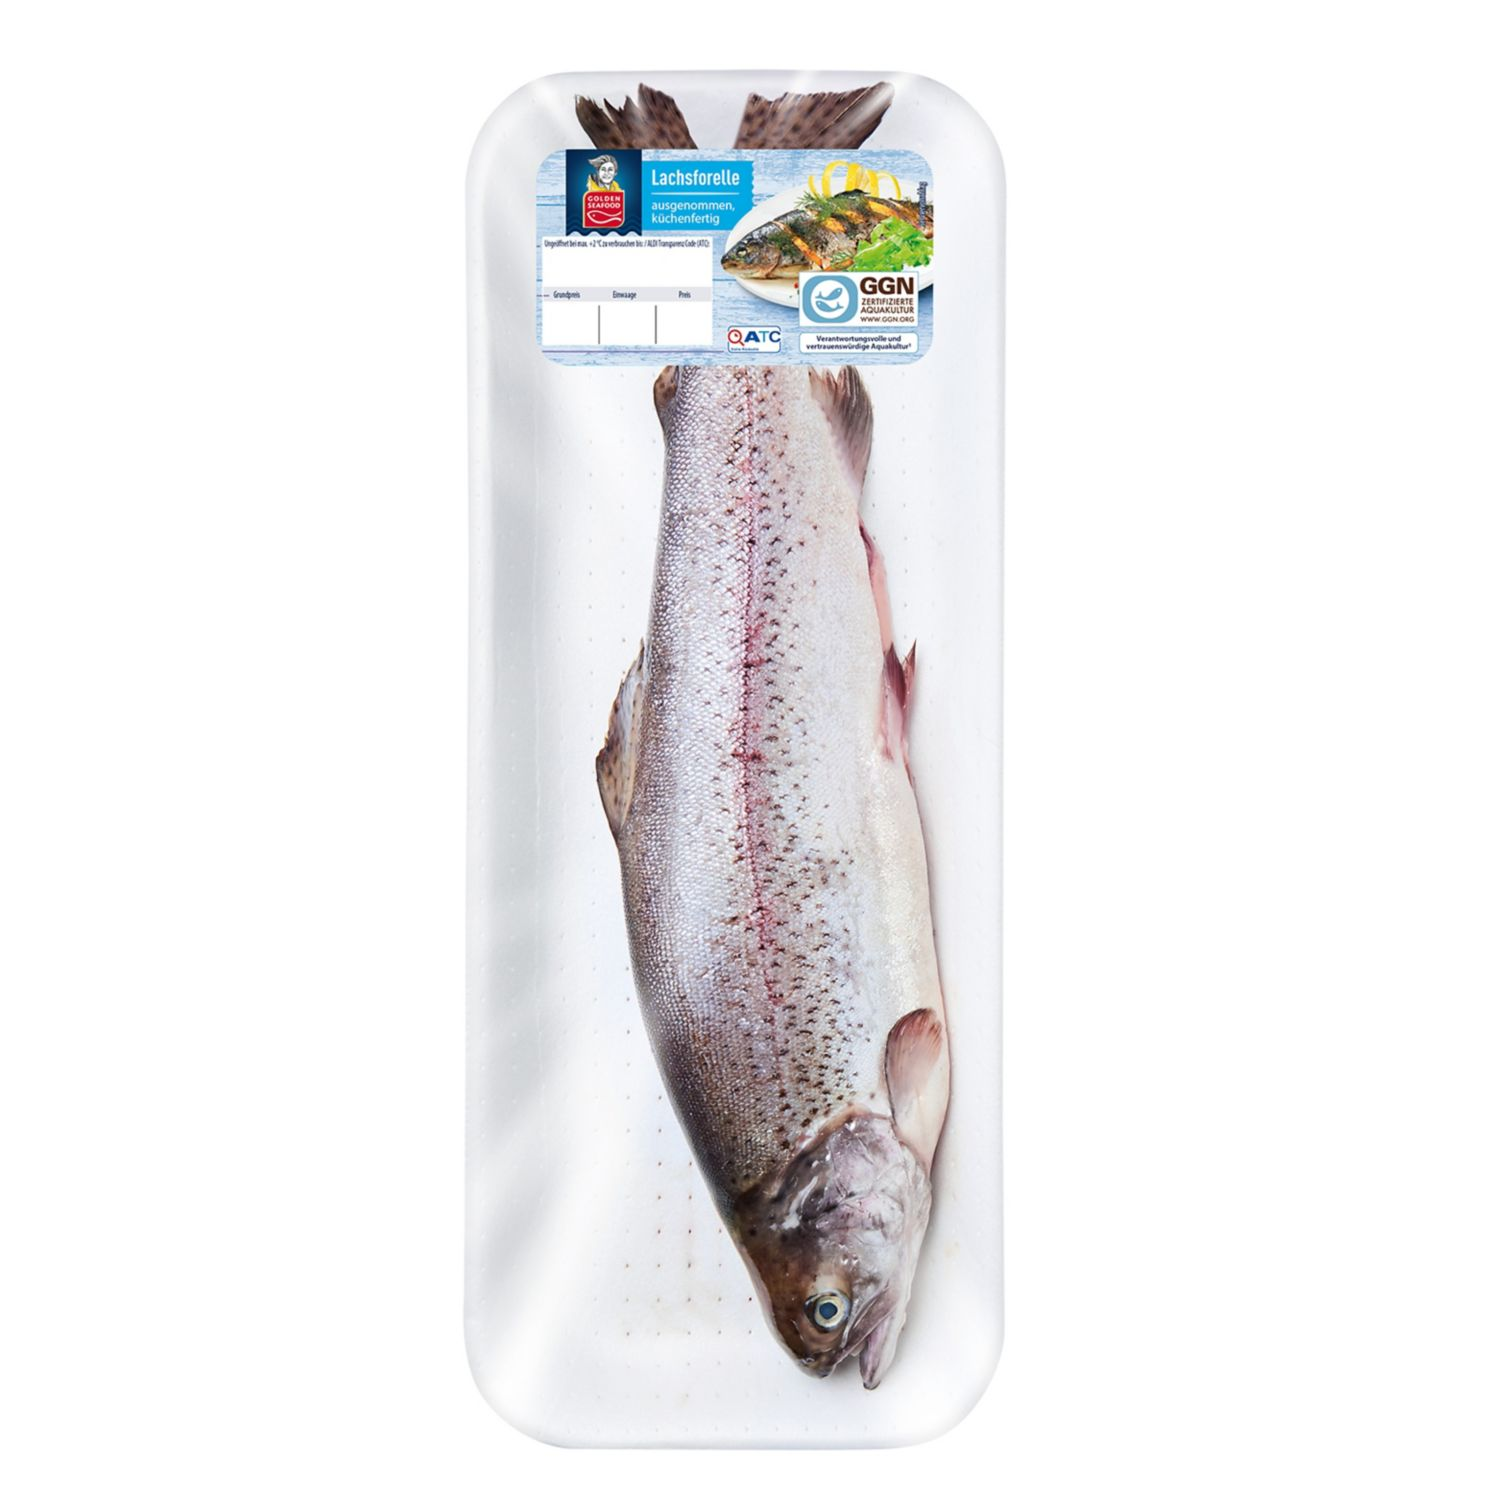 GOLDEN SEAFOOD Lachsforelle 750 g*